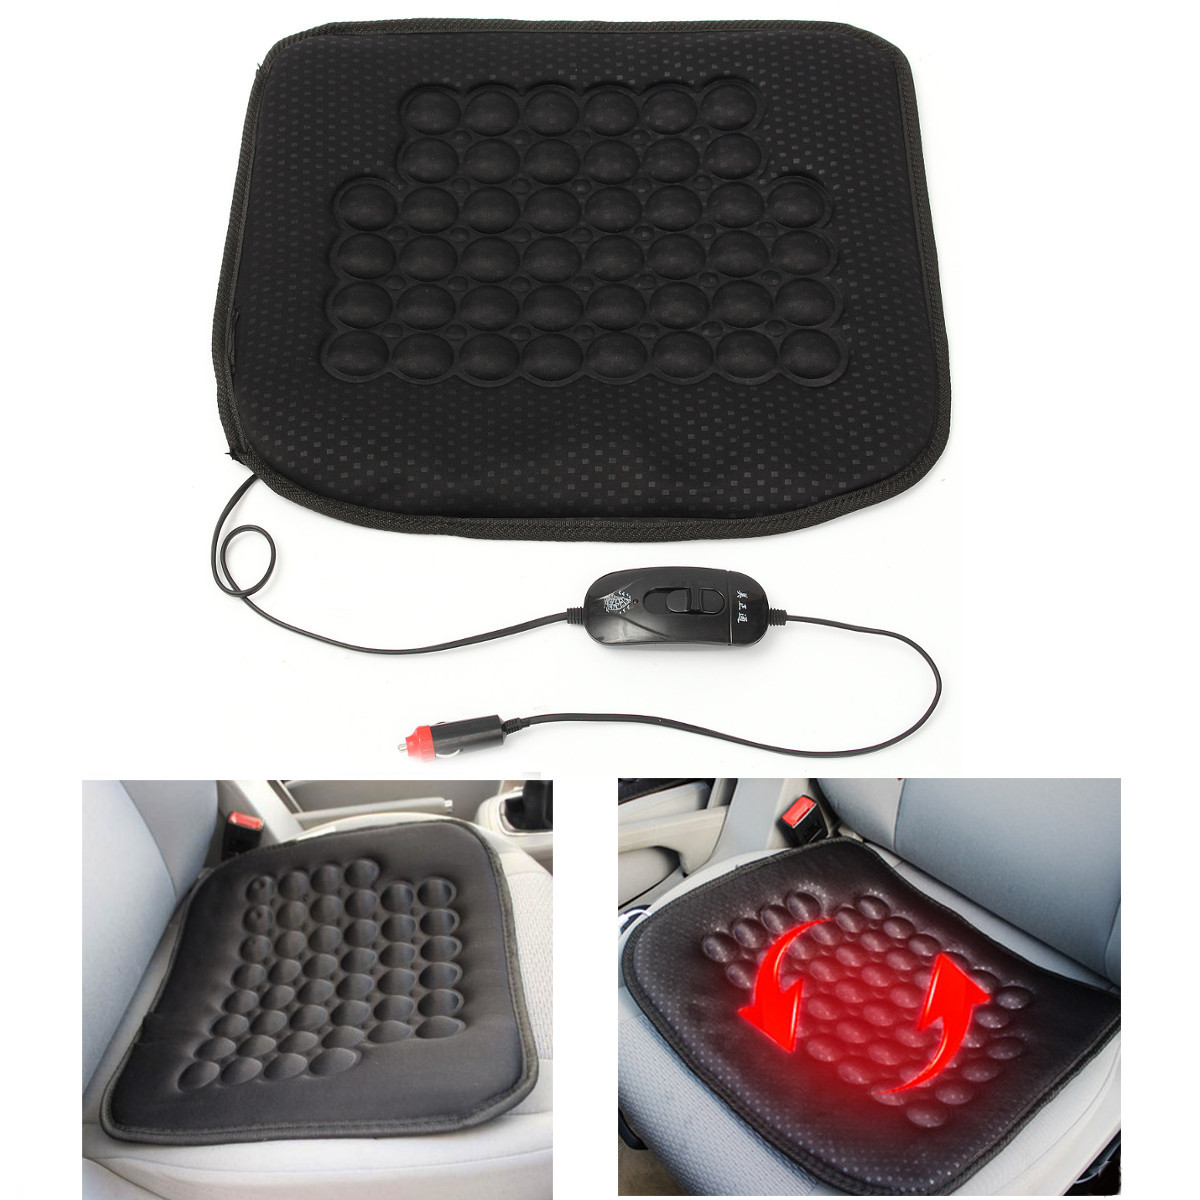 12V 30W Car Front Seat Heated Cushion Hot Cover Warmer Pad for  Auto SUV Truck Cold Weather and Winter Driving, Black